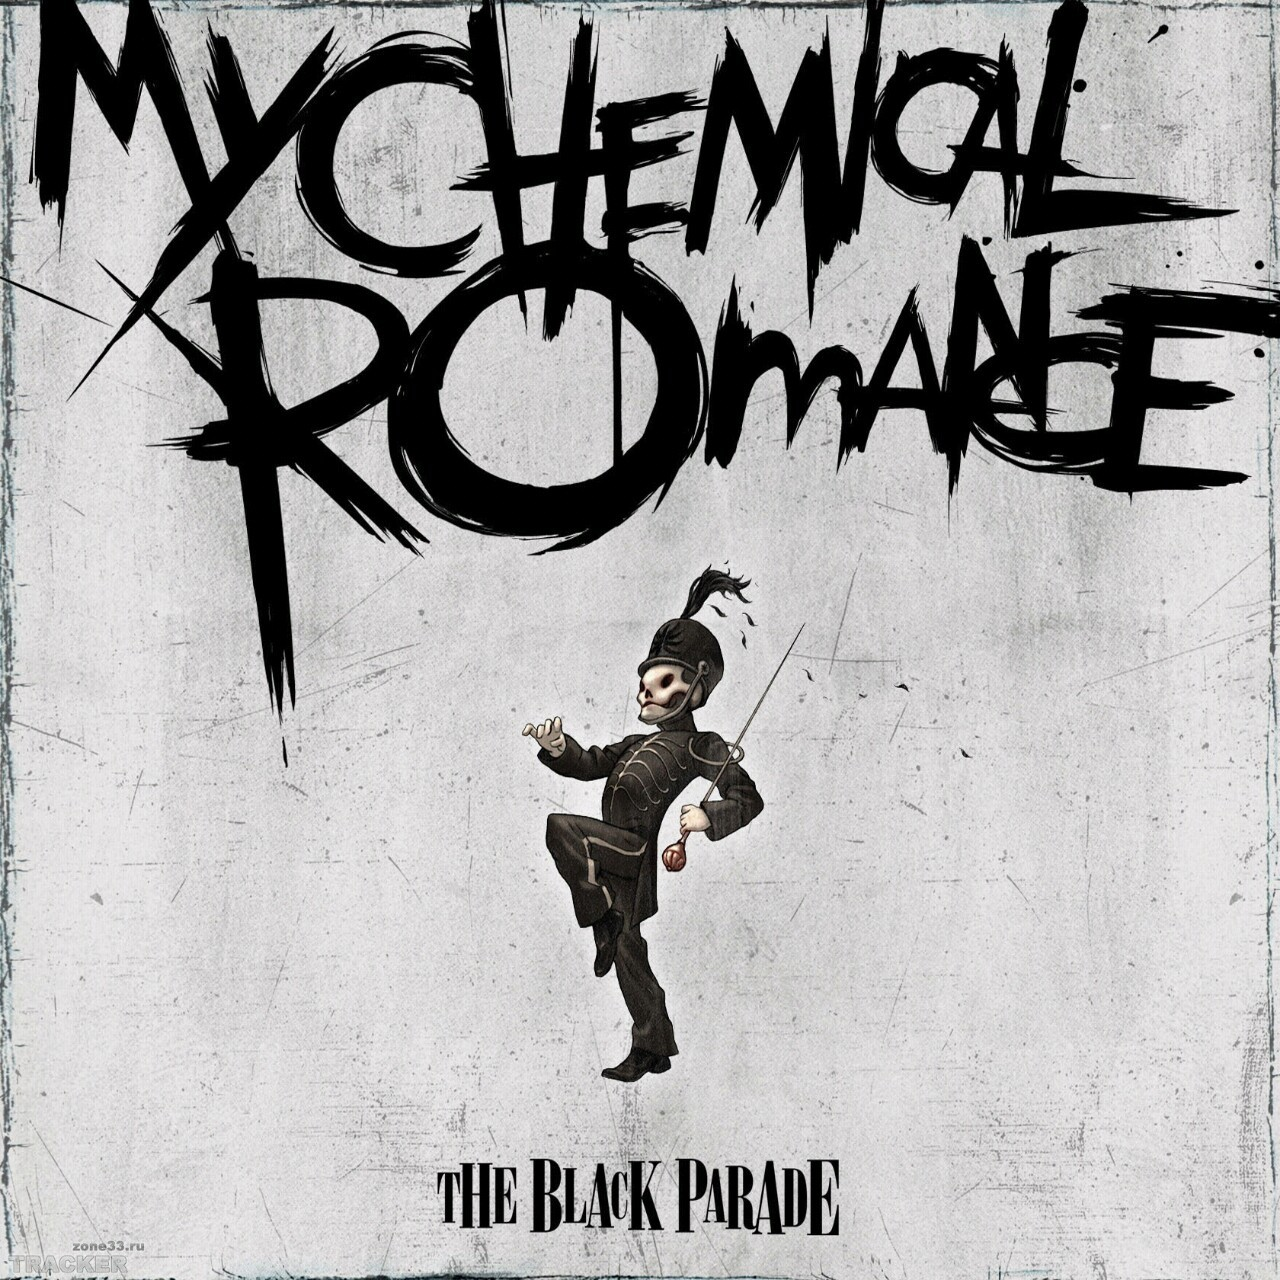 #my chemical romance #black parade